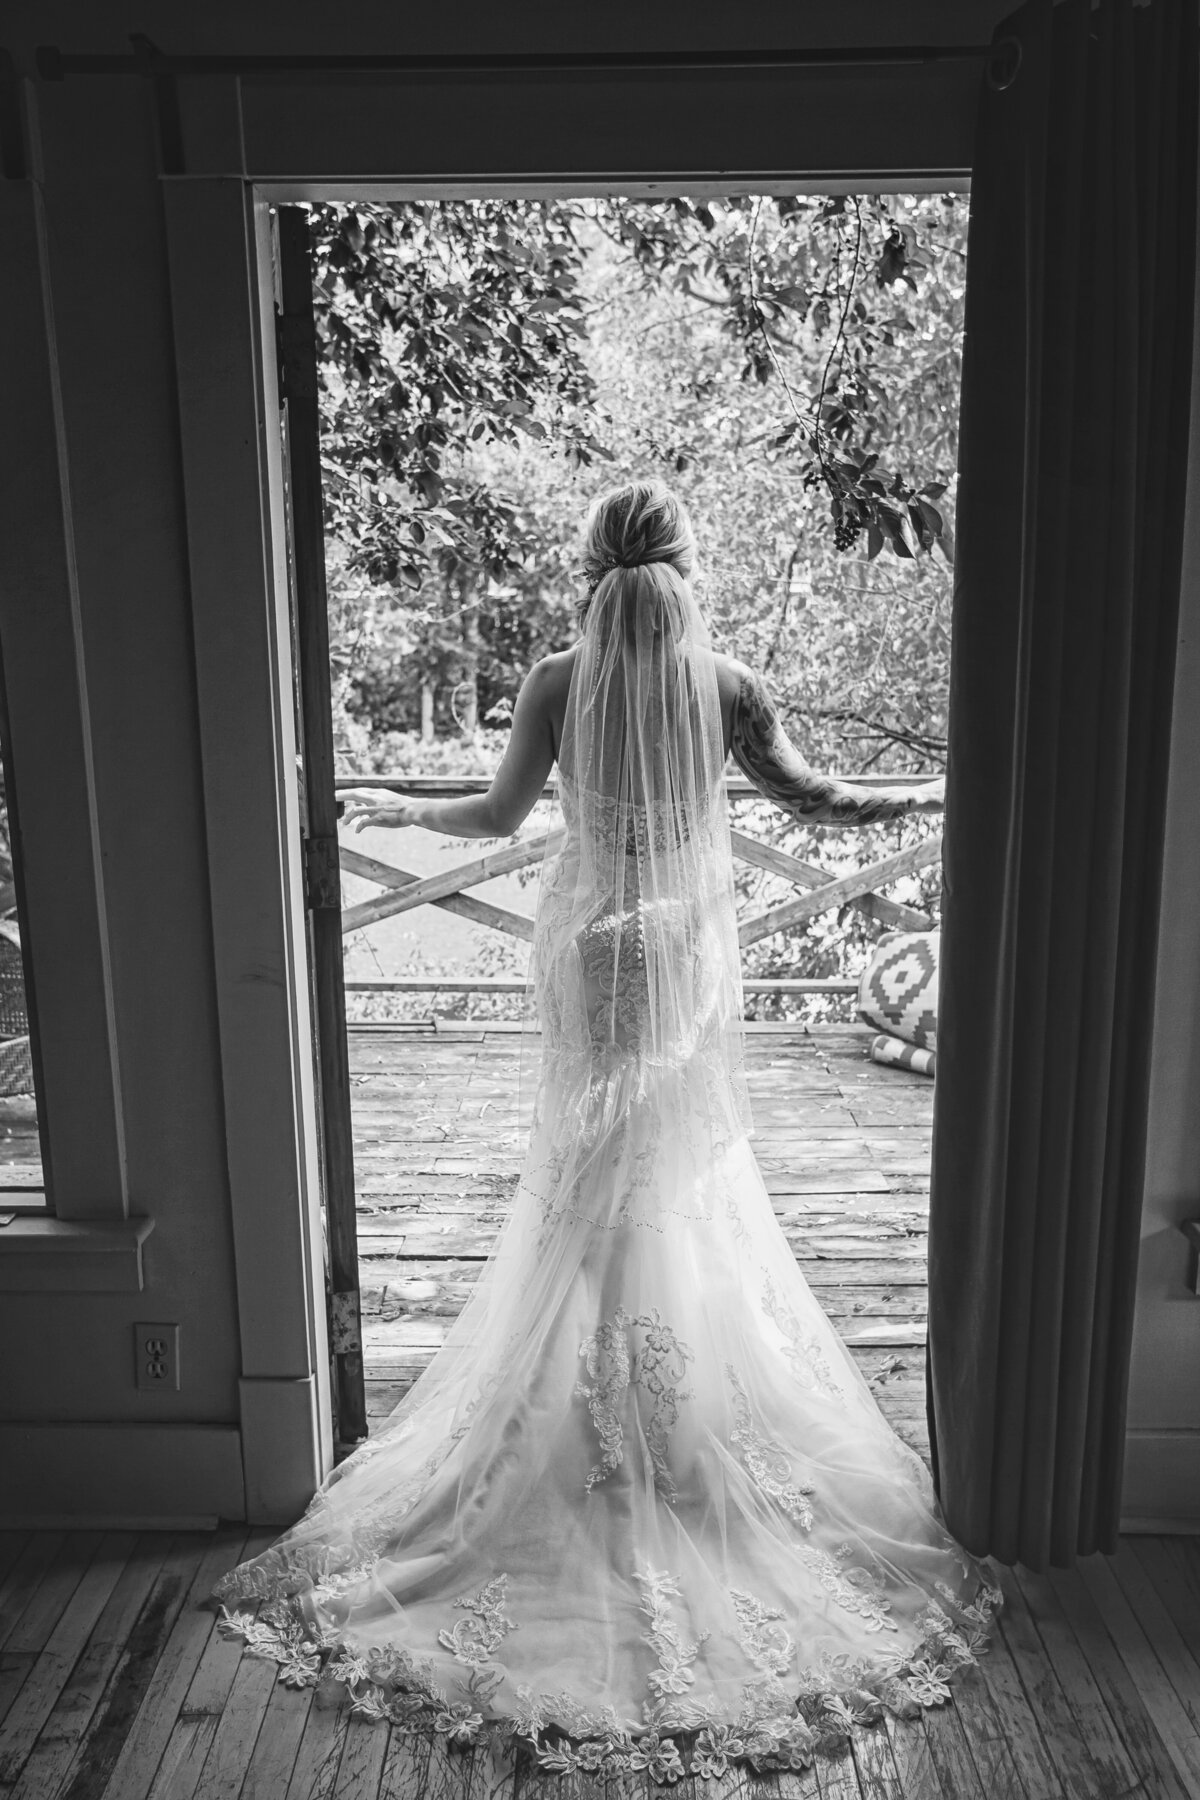 Stunning black and white image of bride in doorway. Long, lace veil trails over white, fitted gown.